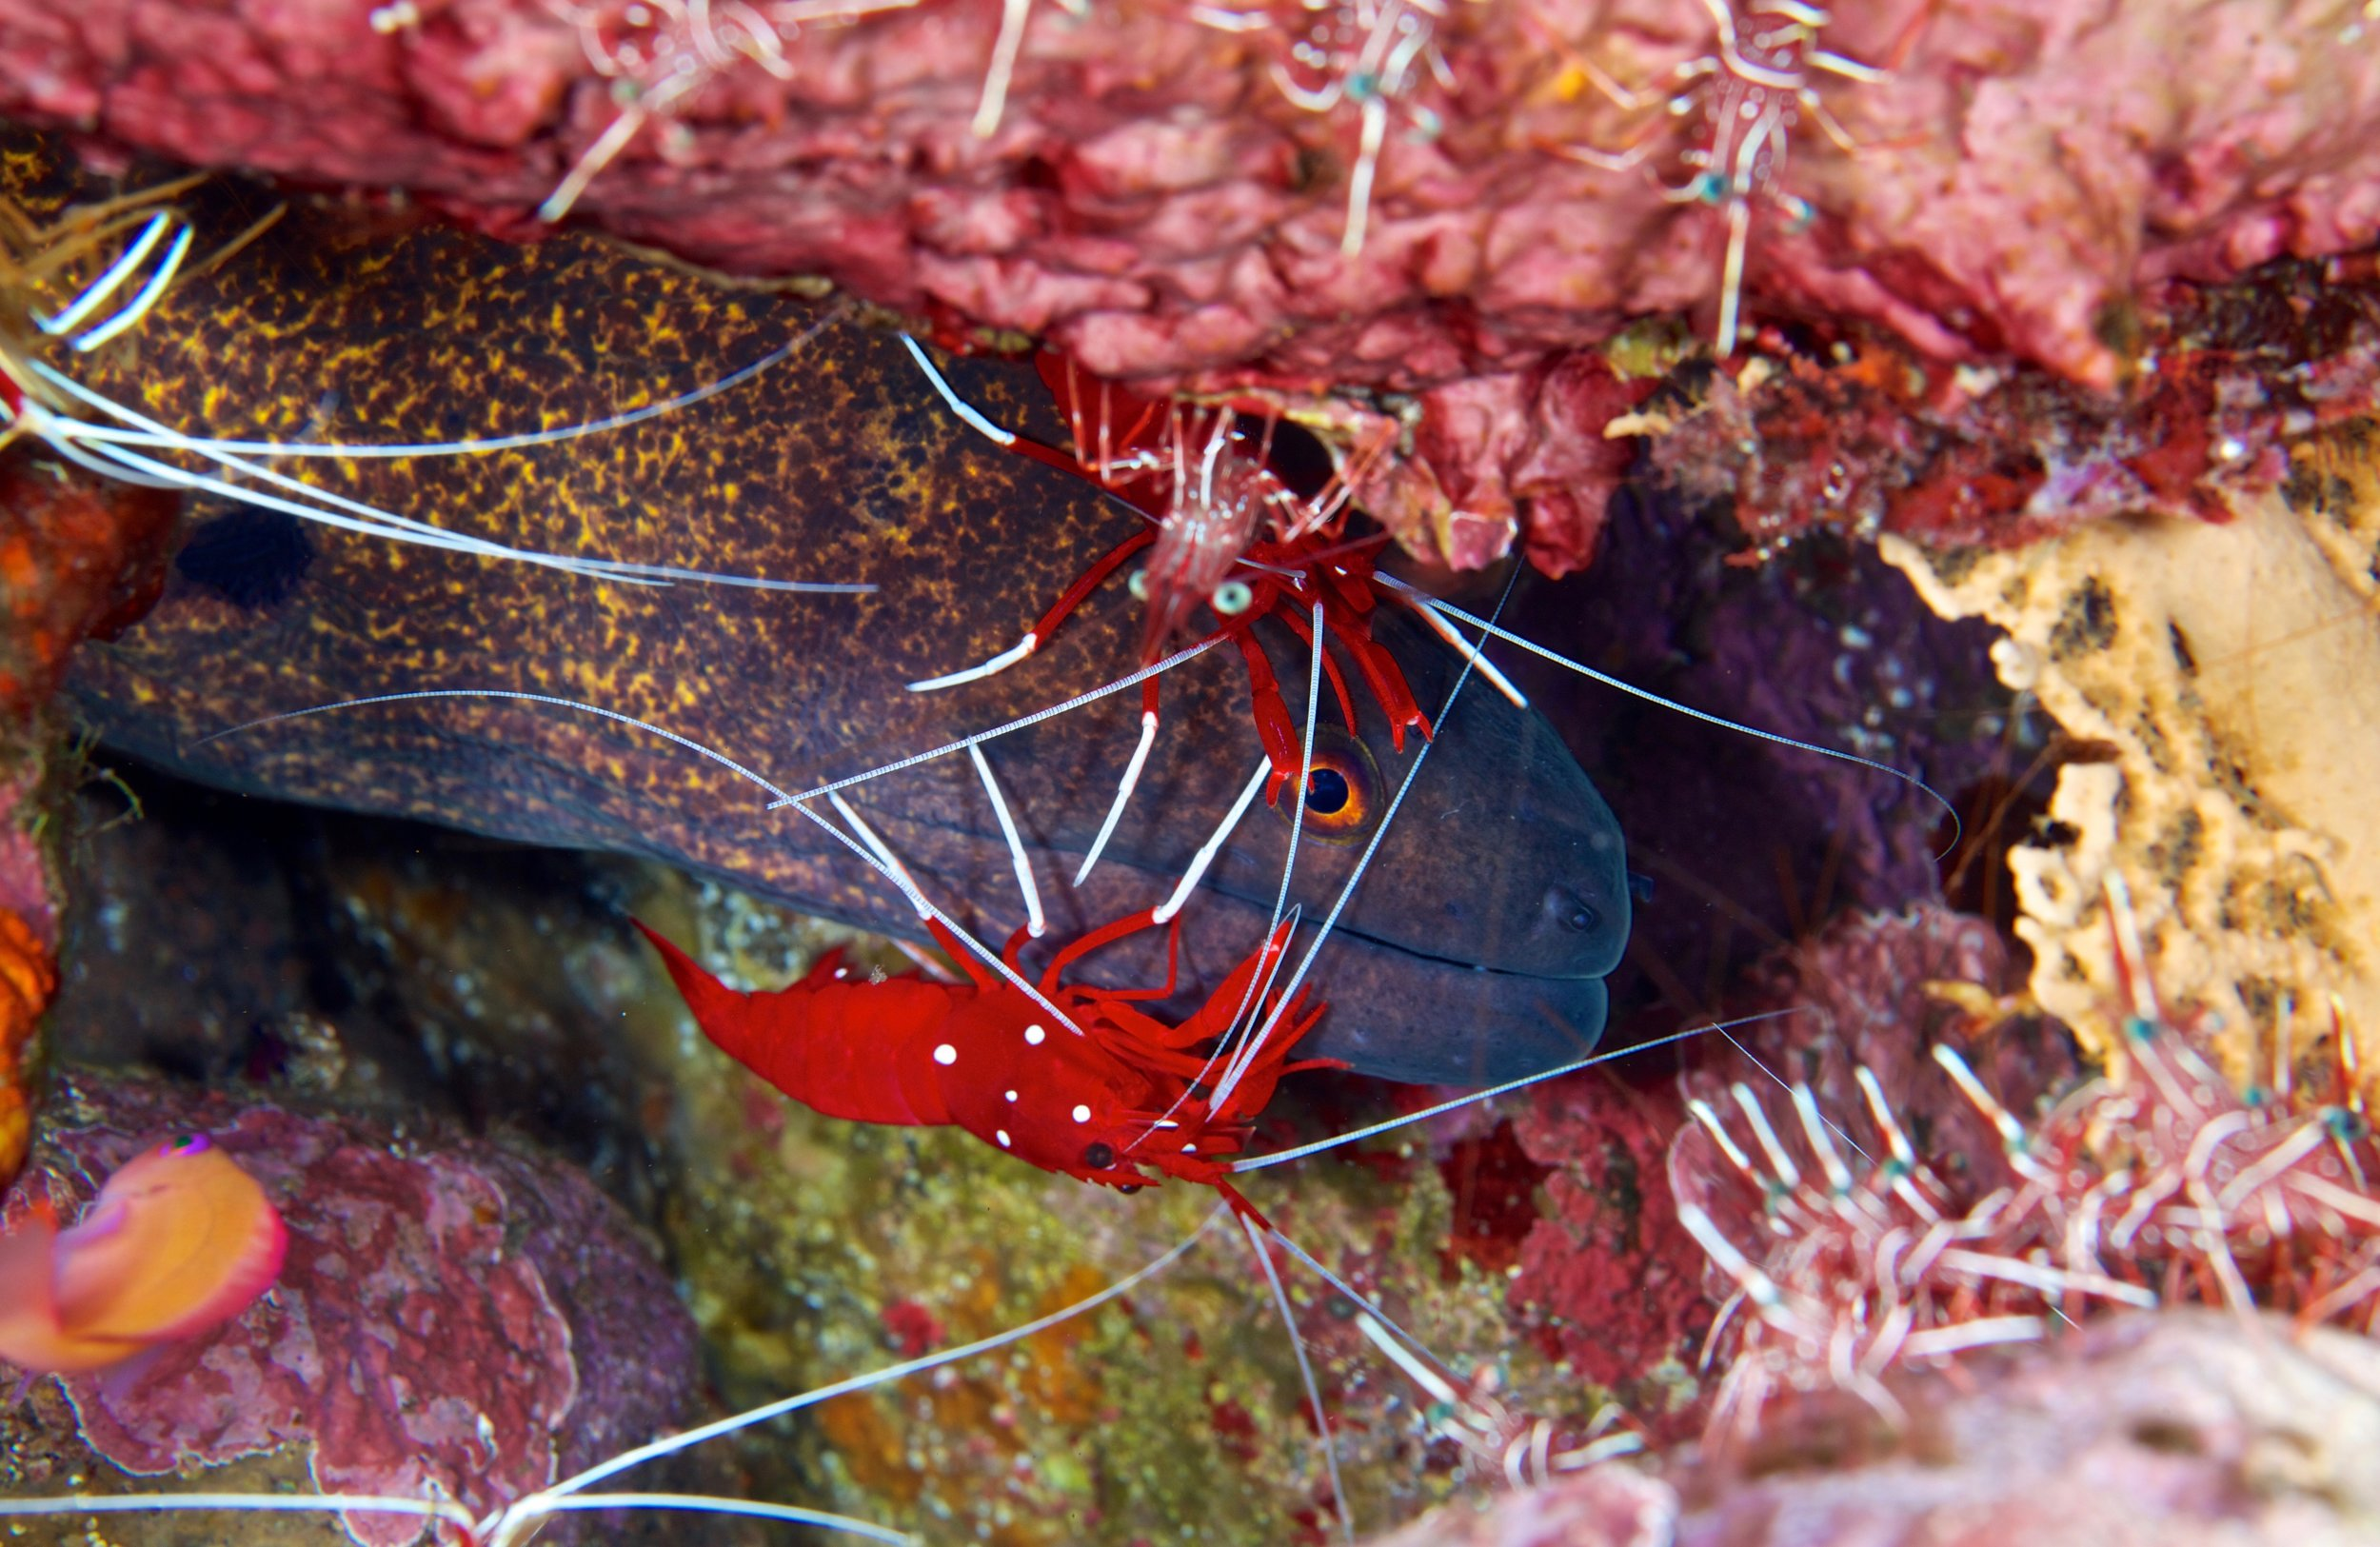 moray with cleaner shrimp credit: Gregory piper / coral reef image bank